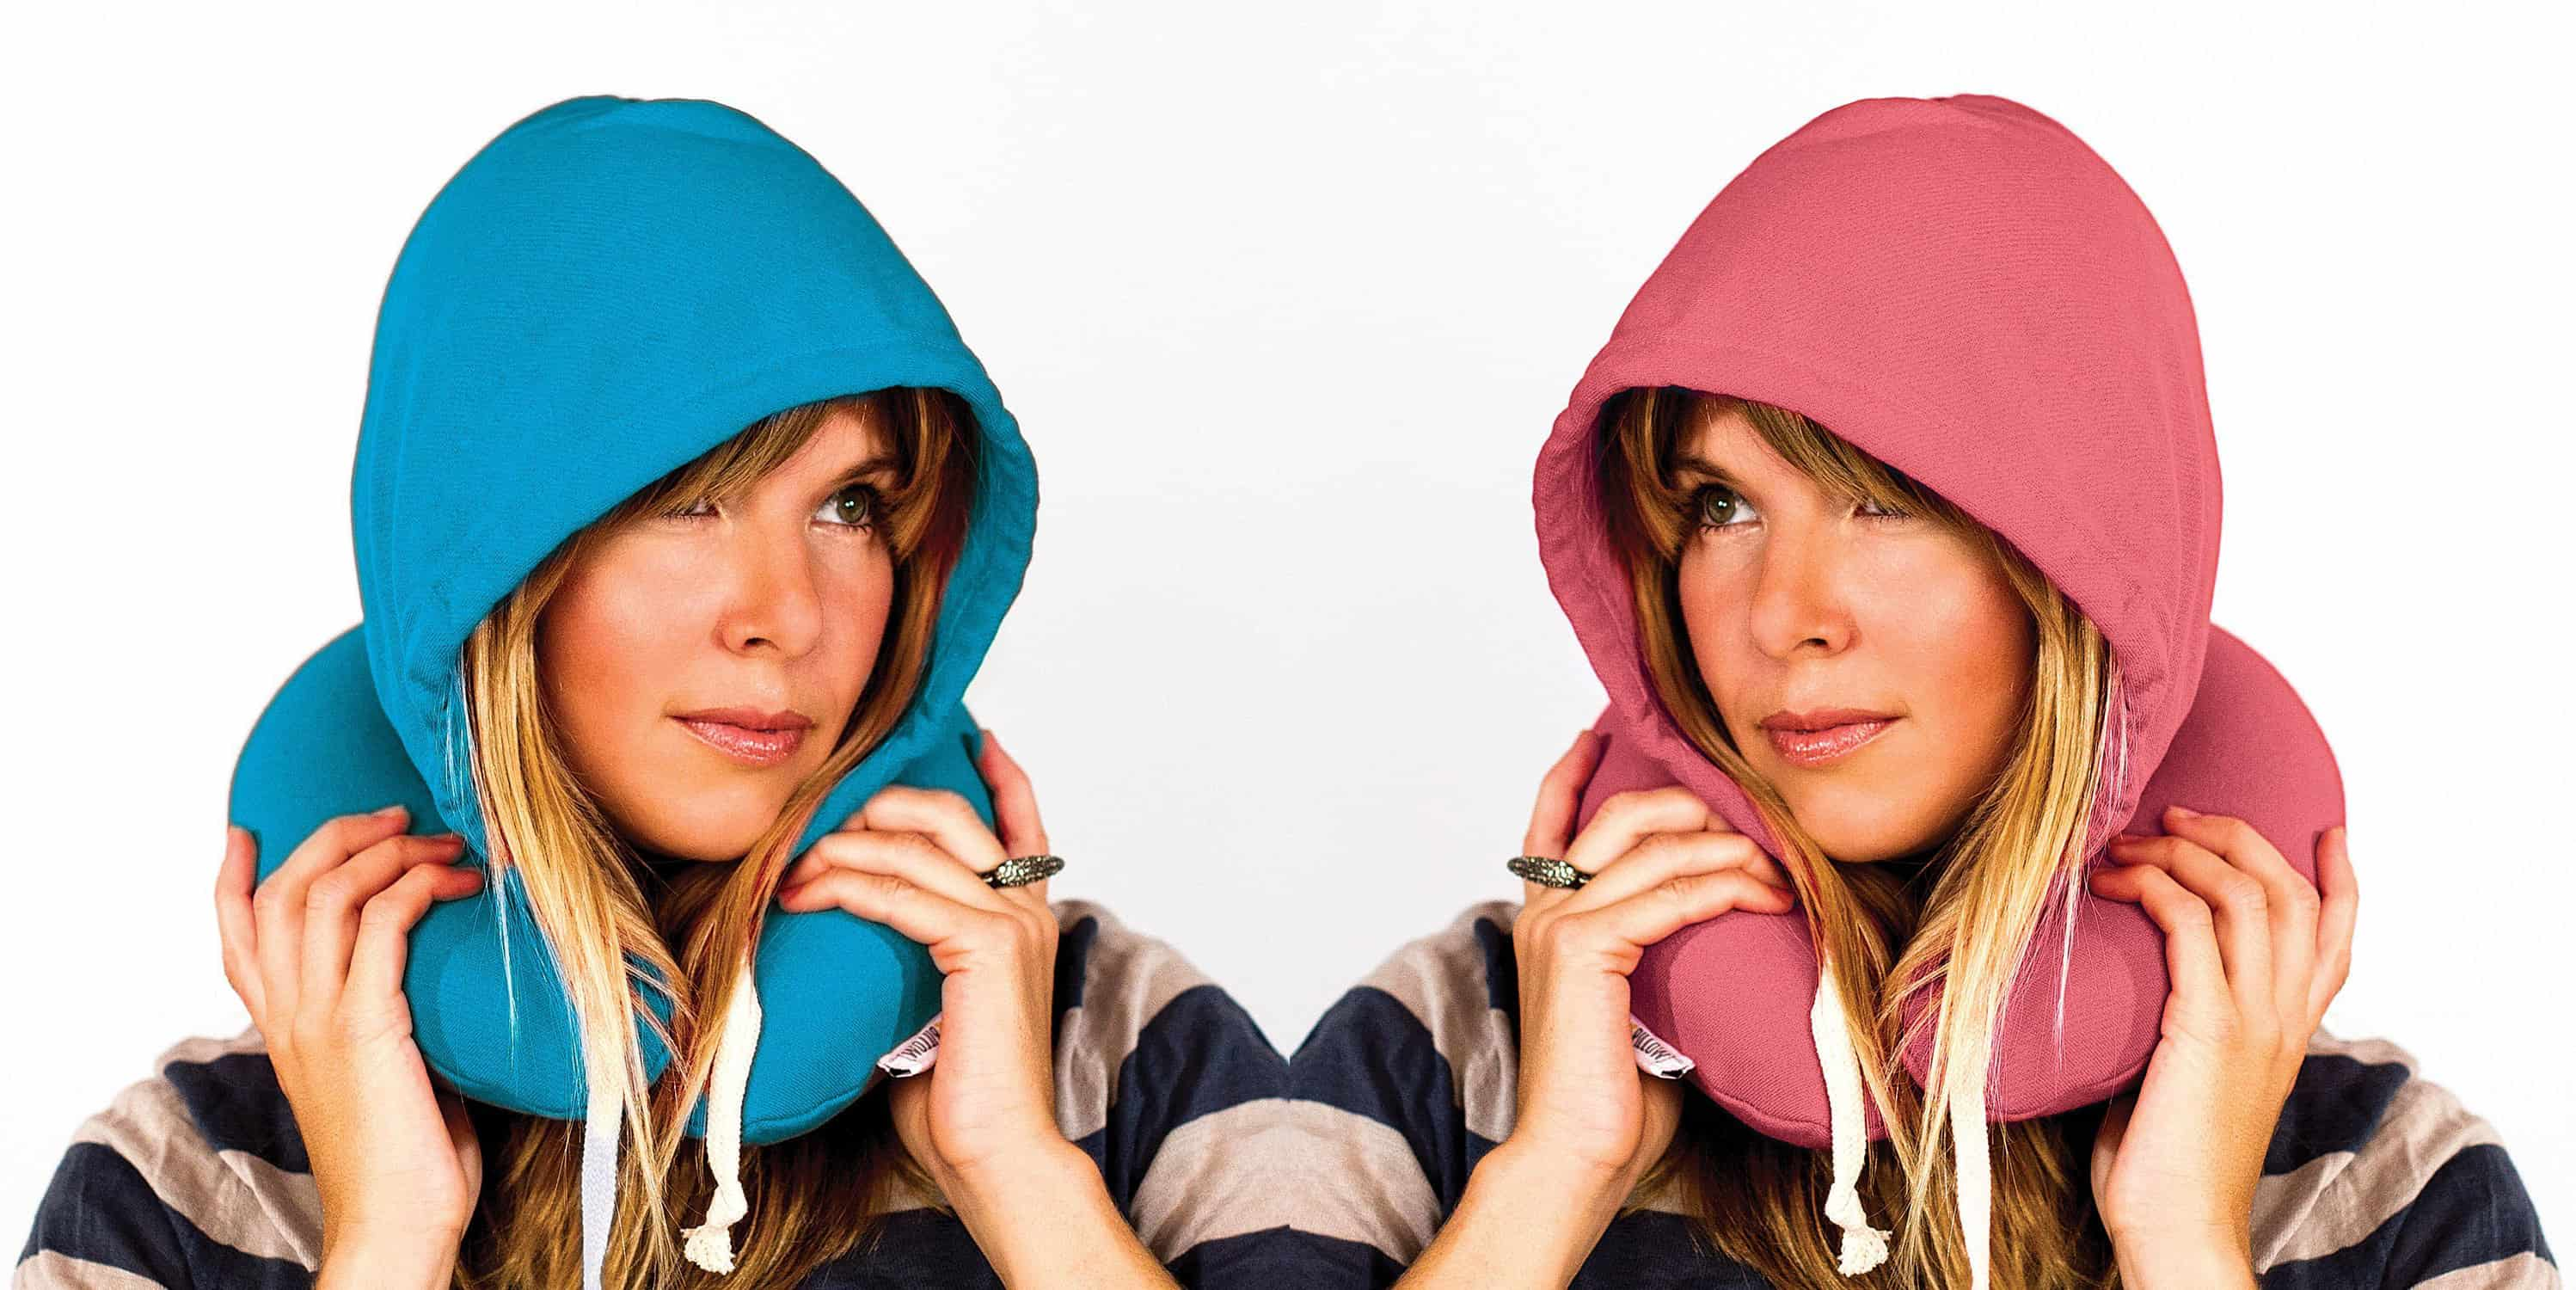 Travel HoodiePillow Novelty Item Pink and Blue Gift for Travellers